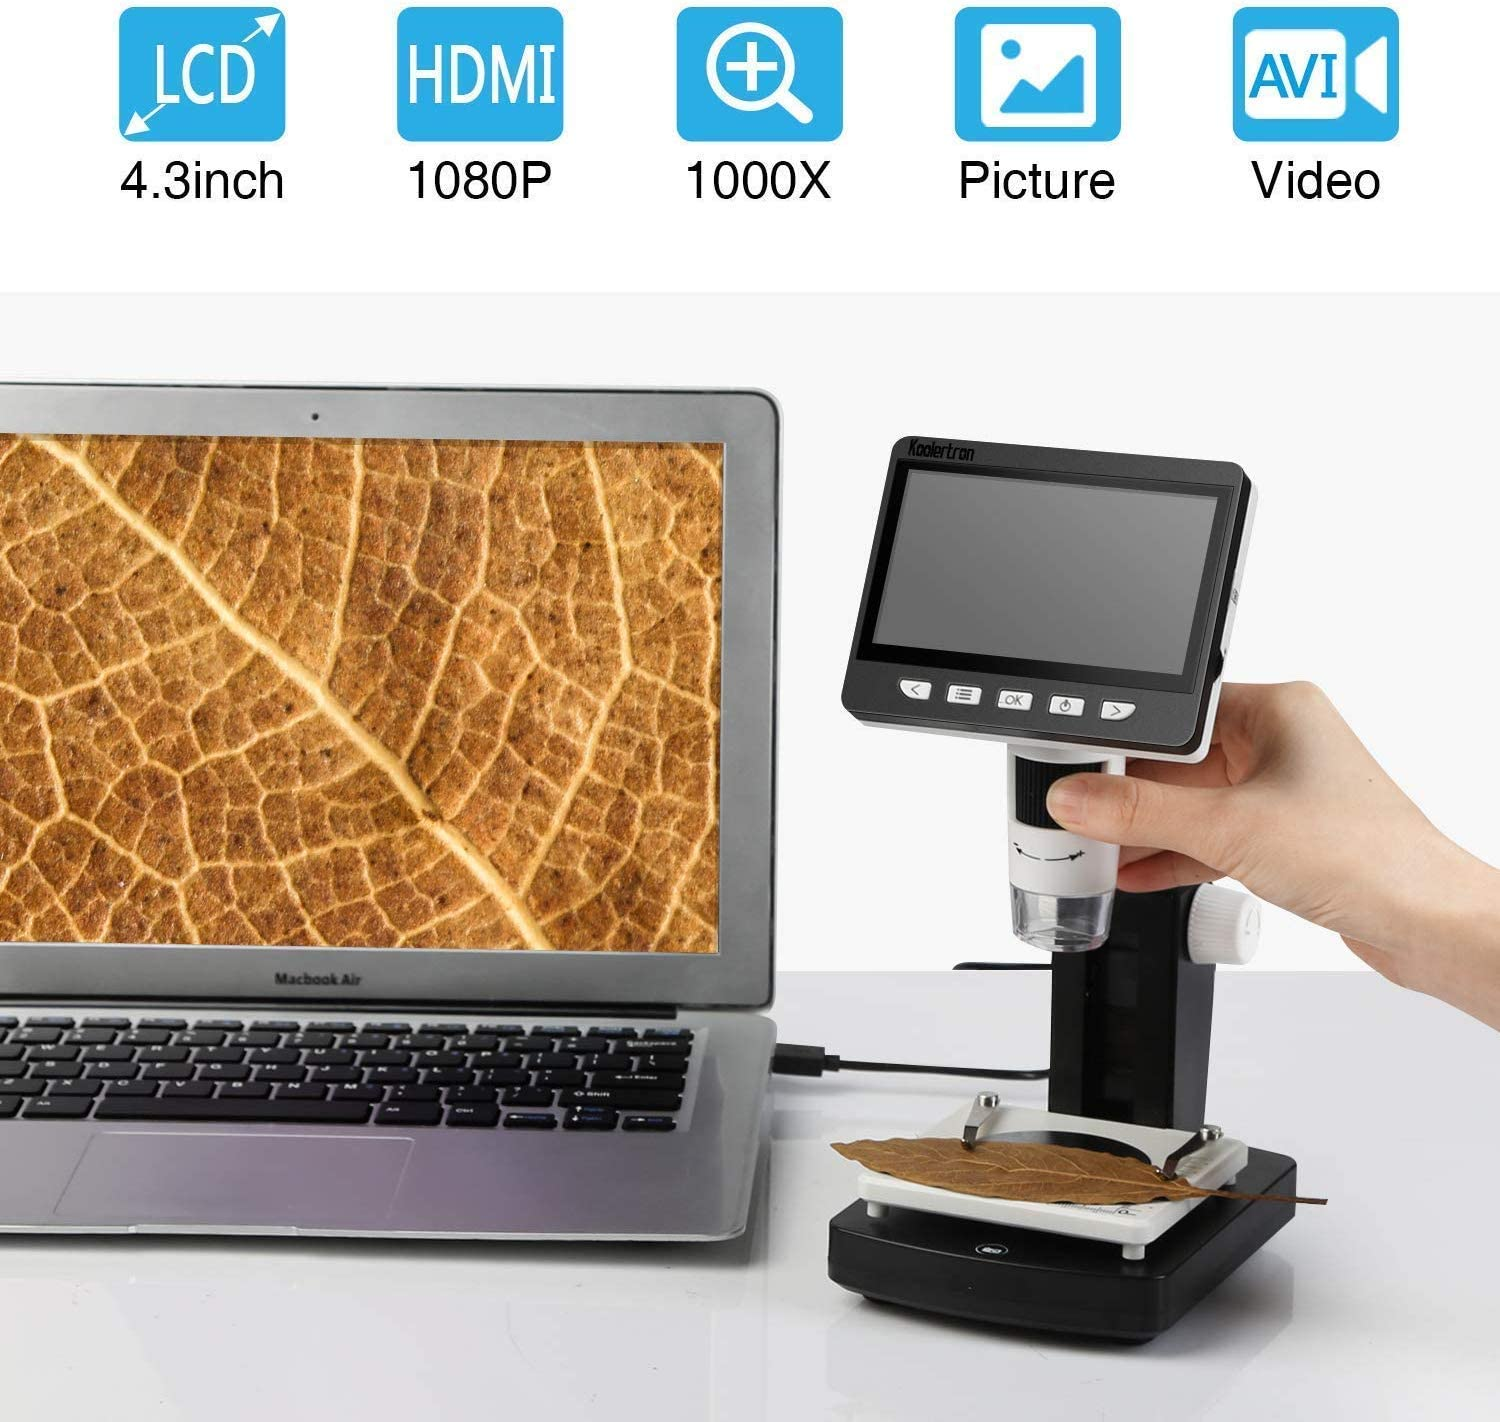 50 X 1000 X Magnification Camera Video Recorder for Windows 8 LEDs 4.3 Inch Digital USB Microscope NA Loadfckcer LCD Microscope